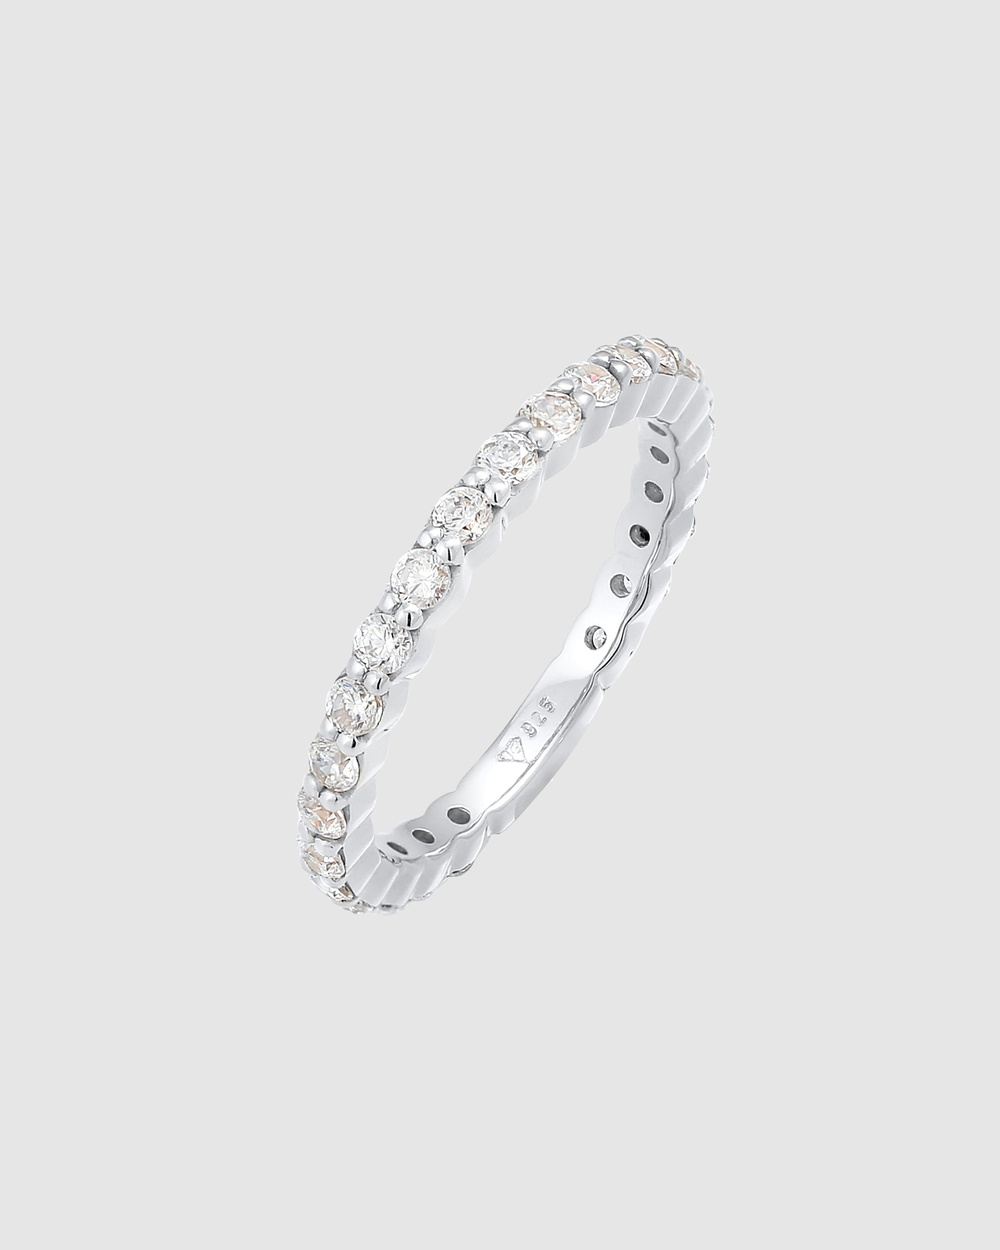 Elli Jewelry Ring Memoire Sparkling with Cubic Zirconia Crystals in 925 Sterling Silver Jewellery Silver